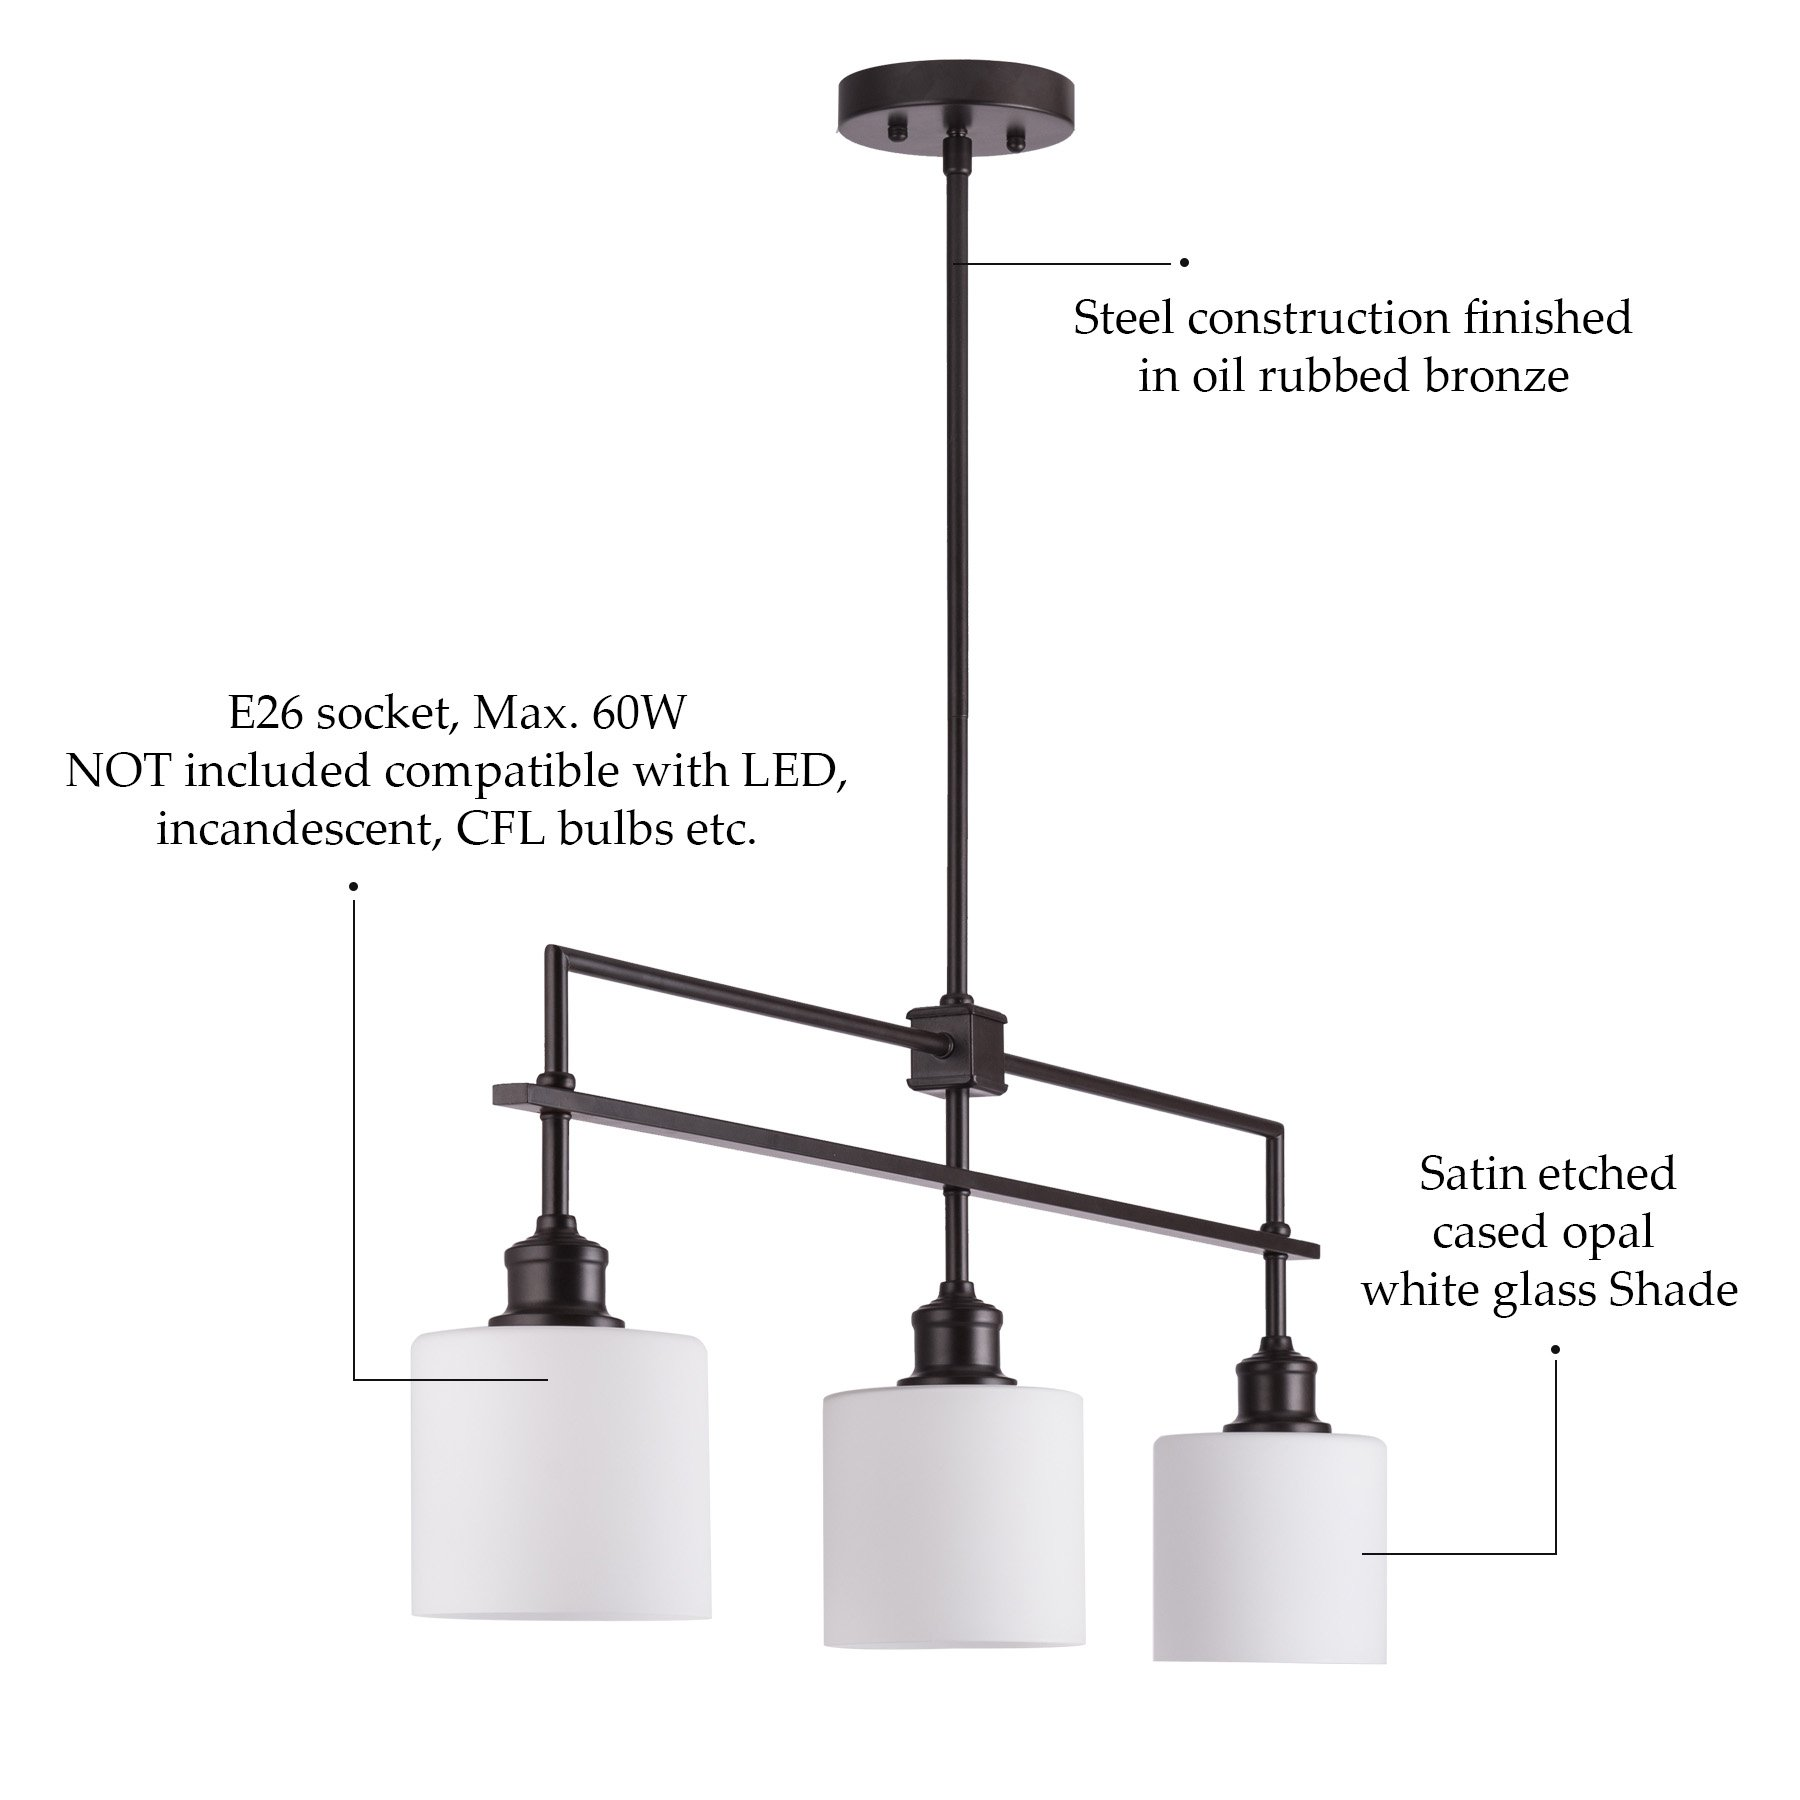 CO-Z Oil Rubbed Bronze Kitchen Island Lighting, 3-Light Linear Pendant Island Chandelier for Billiard Pool Table Dining Room Counter Foyer, Modern Hanging Ceiling Light Fixture with Opal Glass Shade by CO-Z (Image #6)